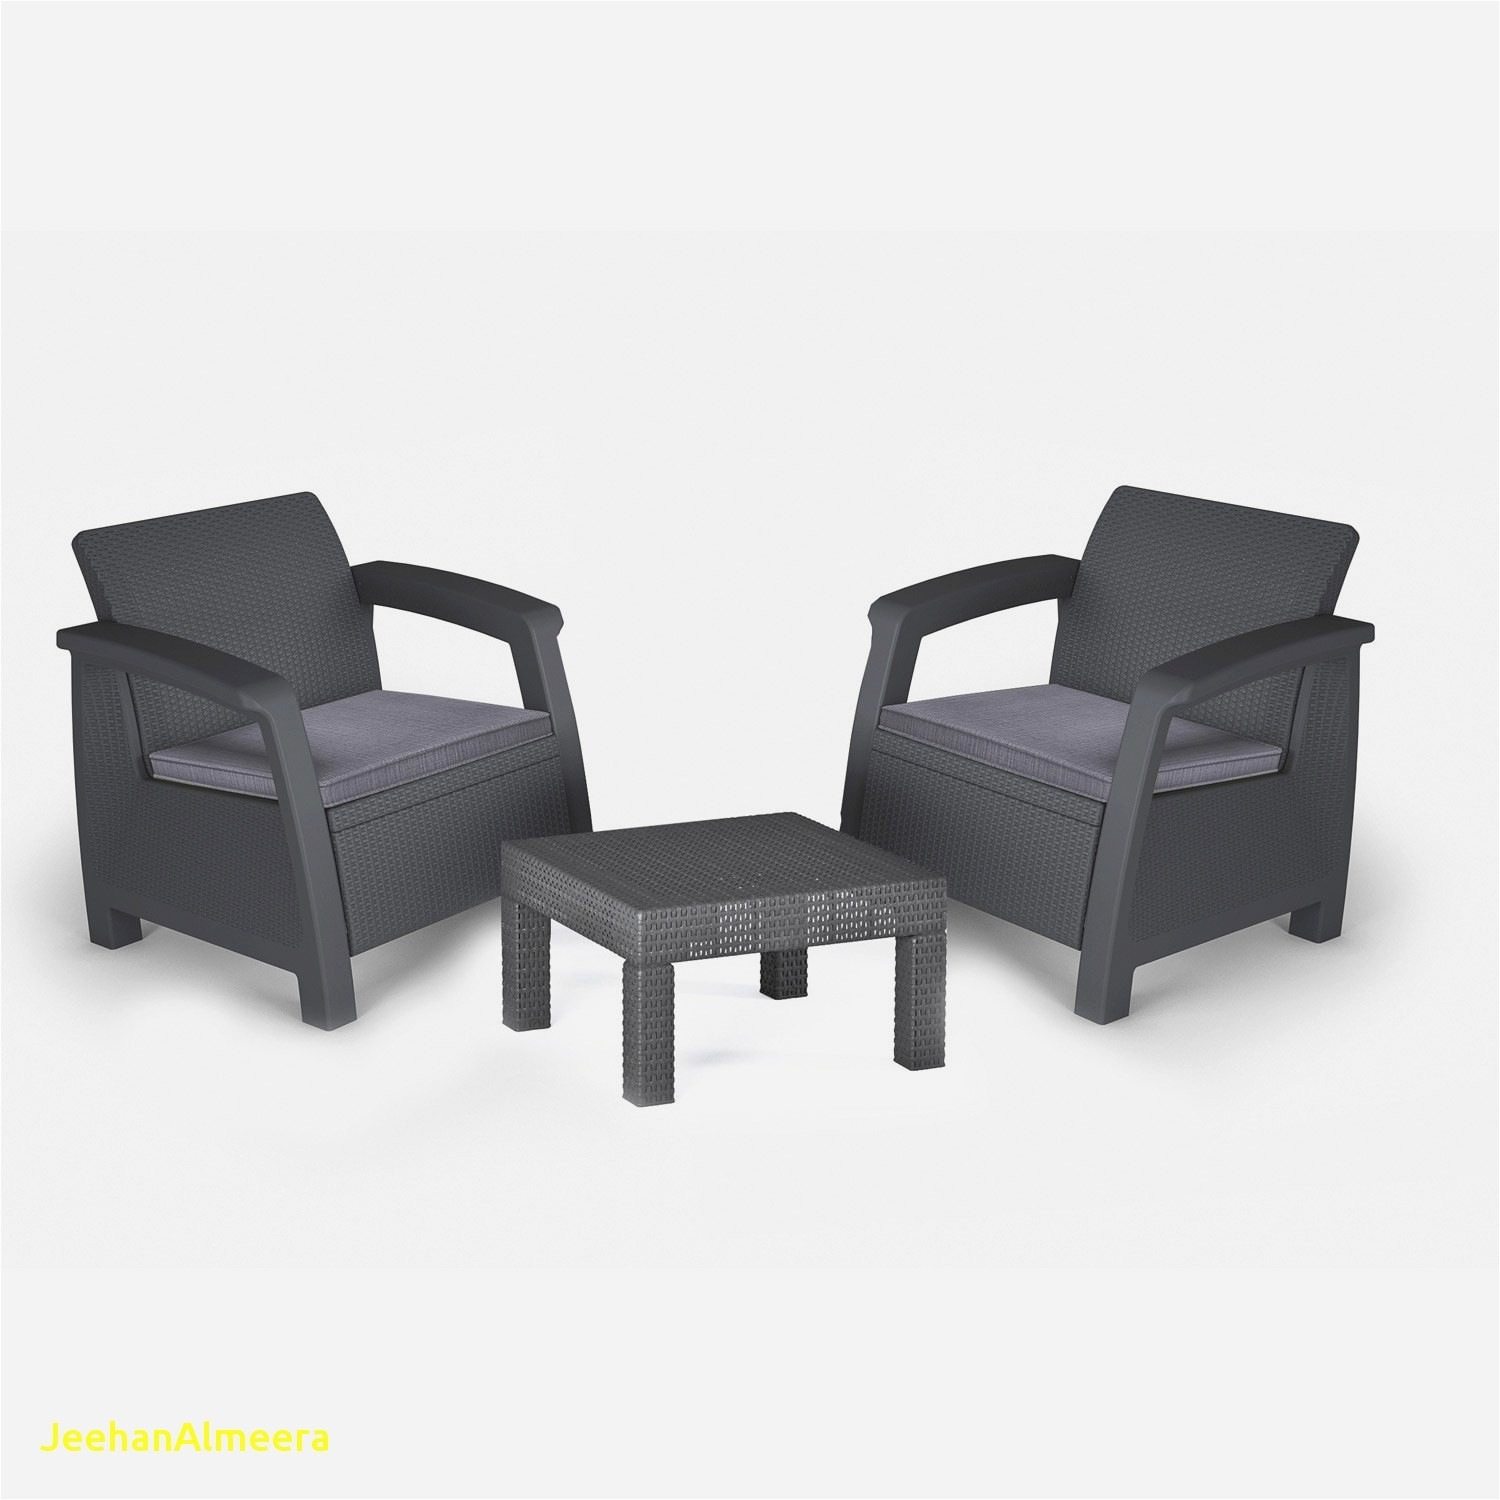 chaises kartell soldes meuble inou chaise starck kartell projet malgr chaises starck soldes. Black Bedroom Furniture Sets. Home Design Ideas